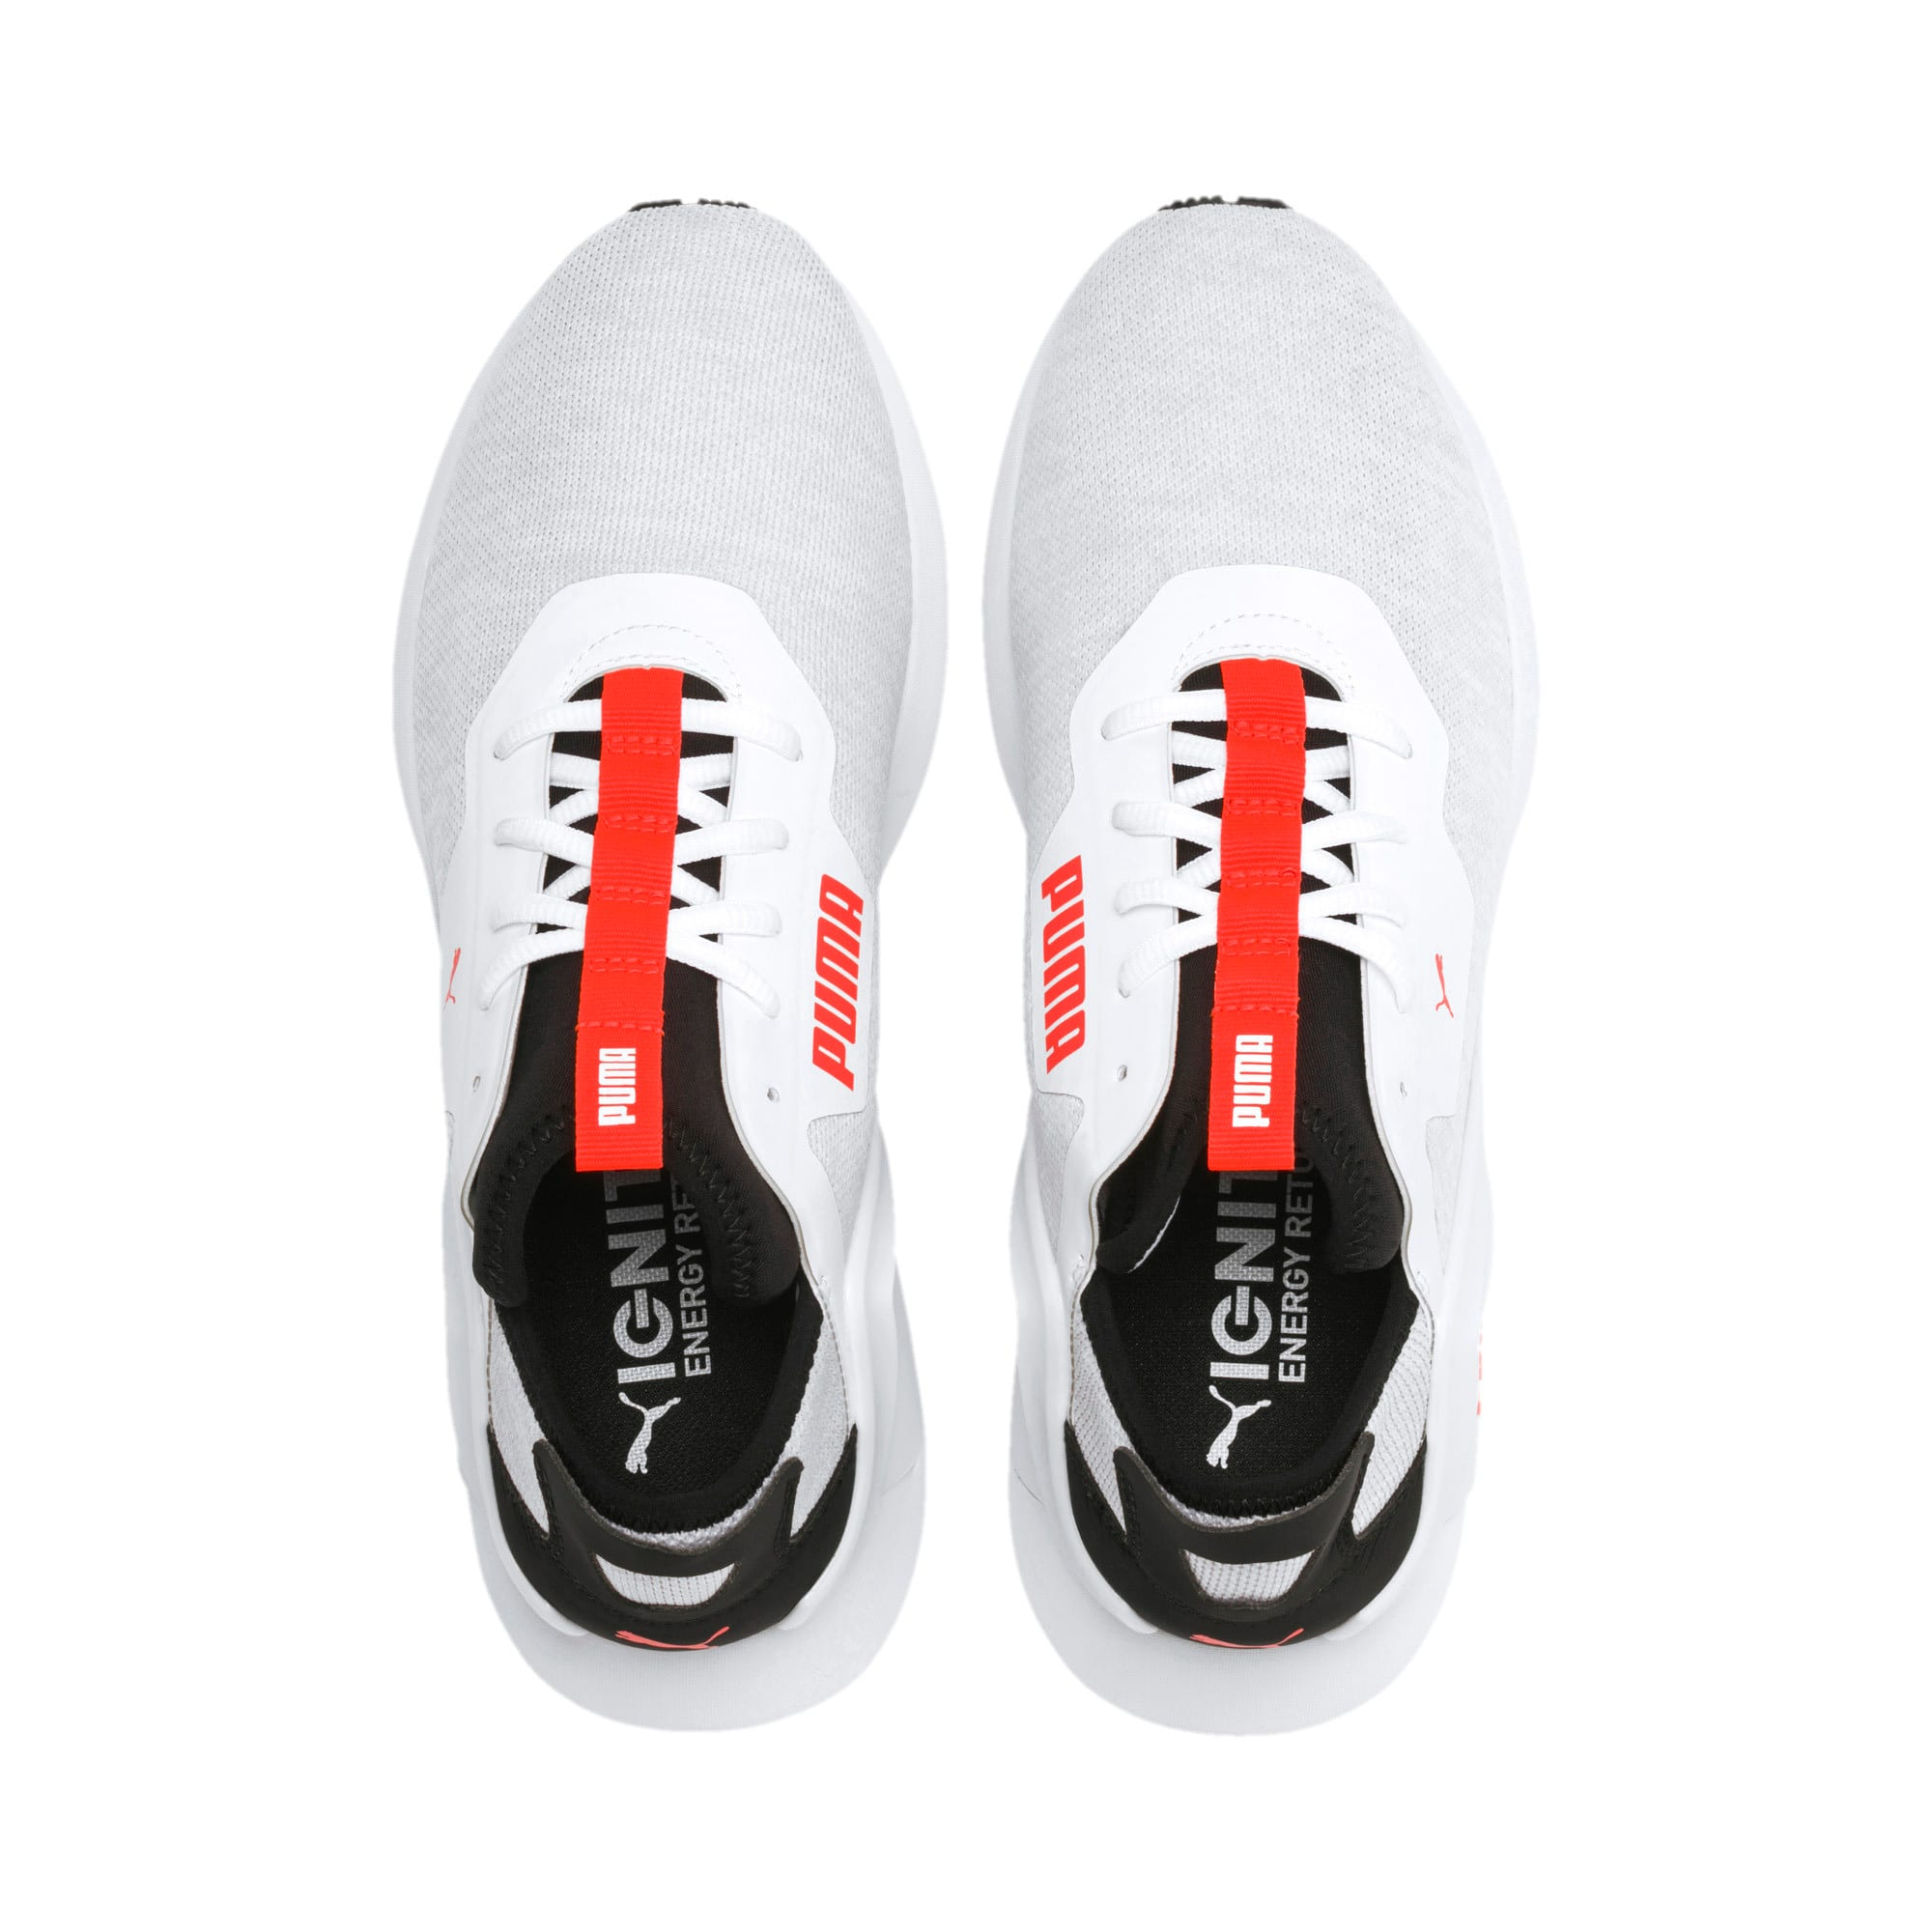 Thumbnail 7 of Rogue X Knit Men's Trainers, White-Black-Nrgy Red, medium